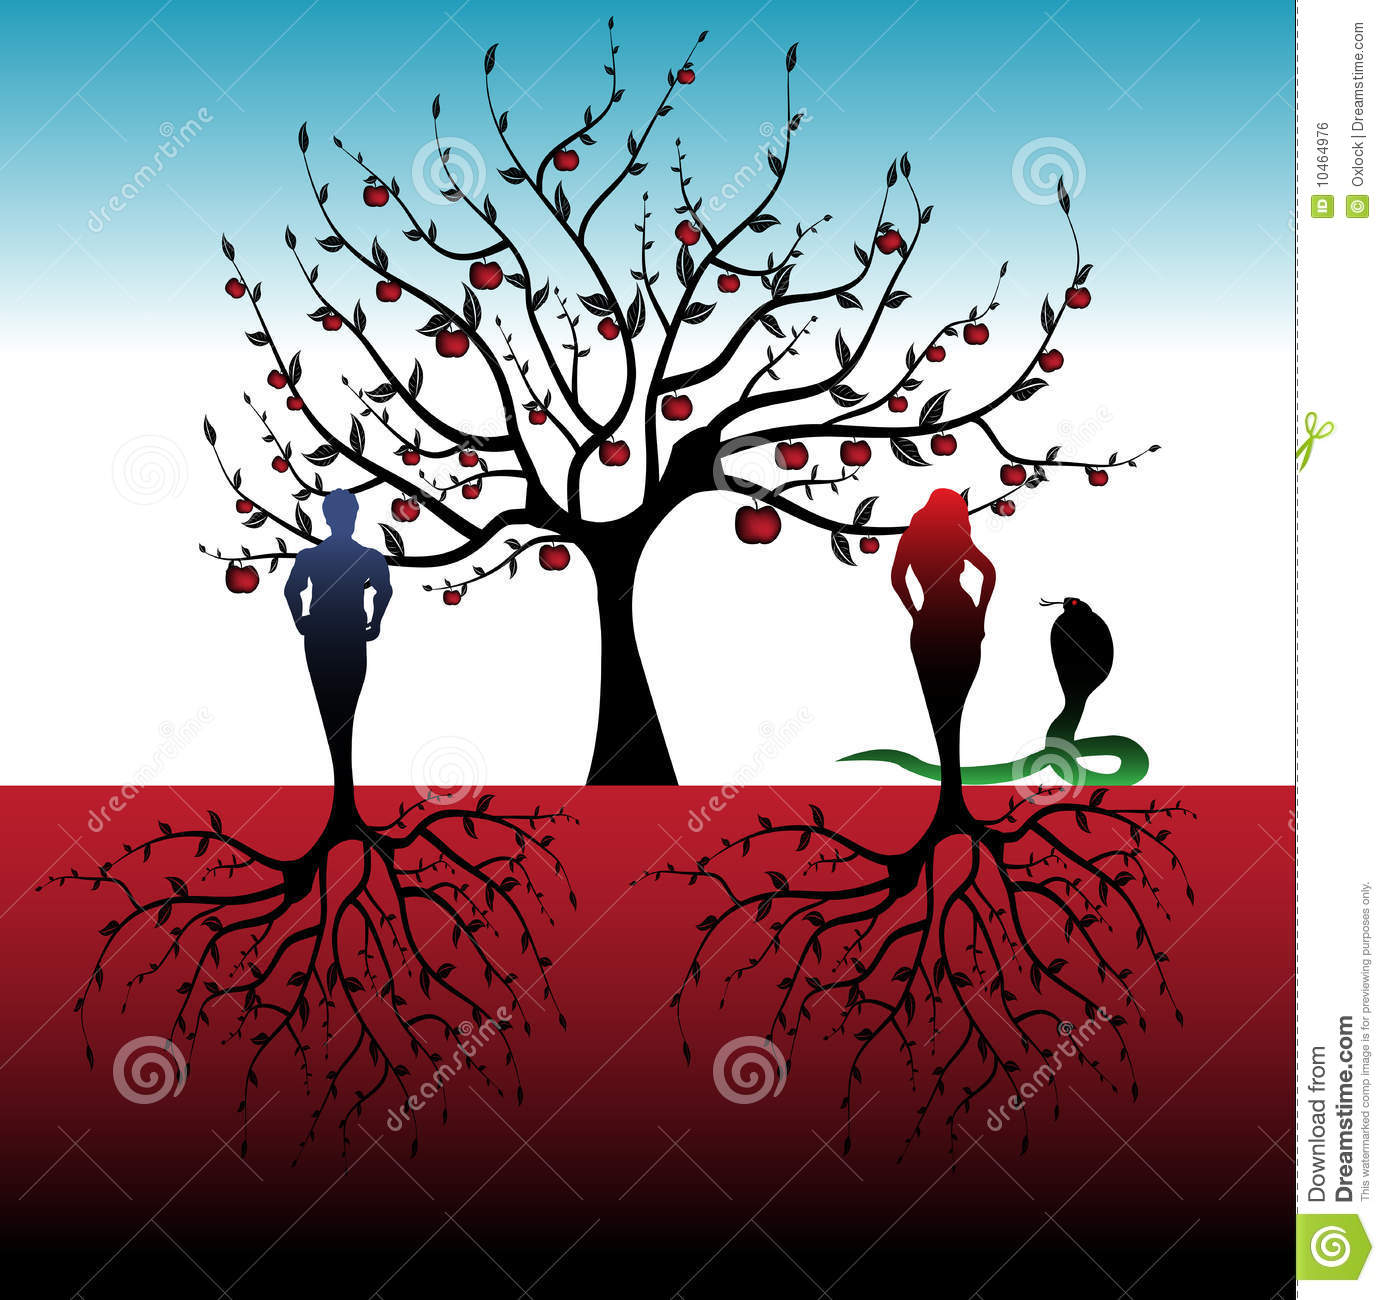 adam and eve royalty free stock image image 10464976